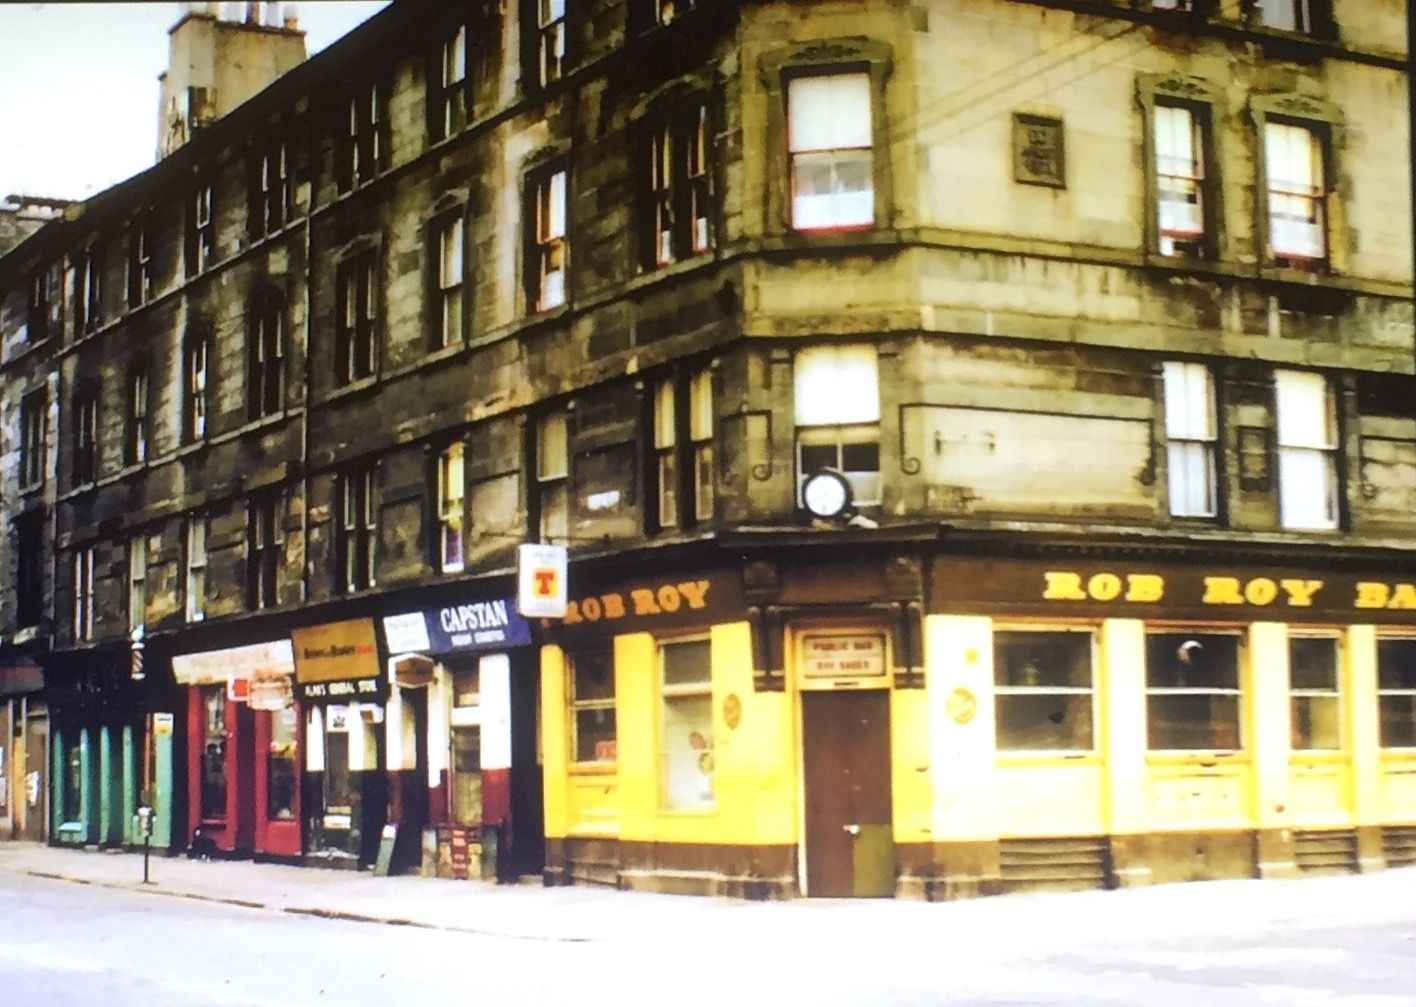 Rob Roy Bar, Govan 1976, I couldn't find copyright info for this picture. If you own it, let me know!